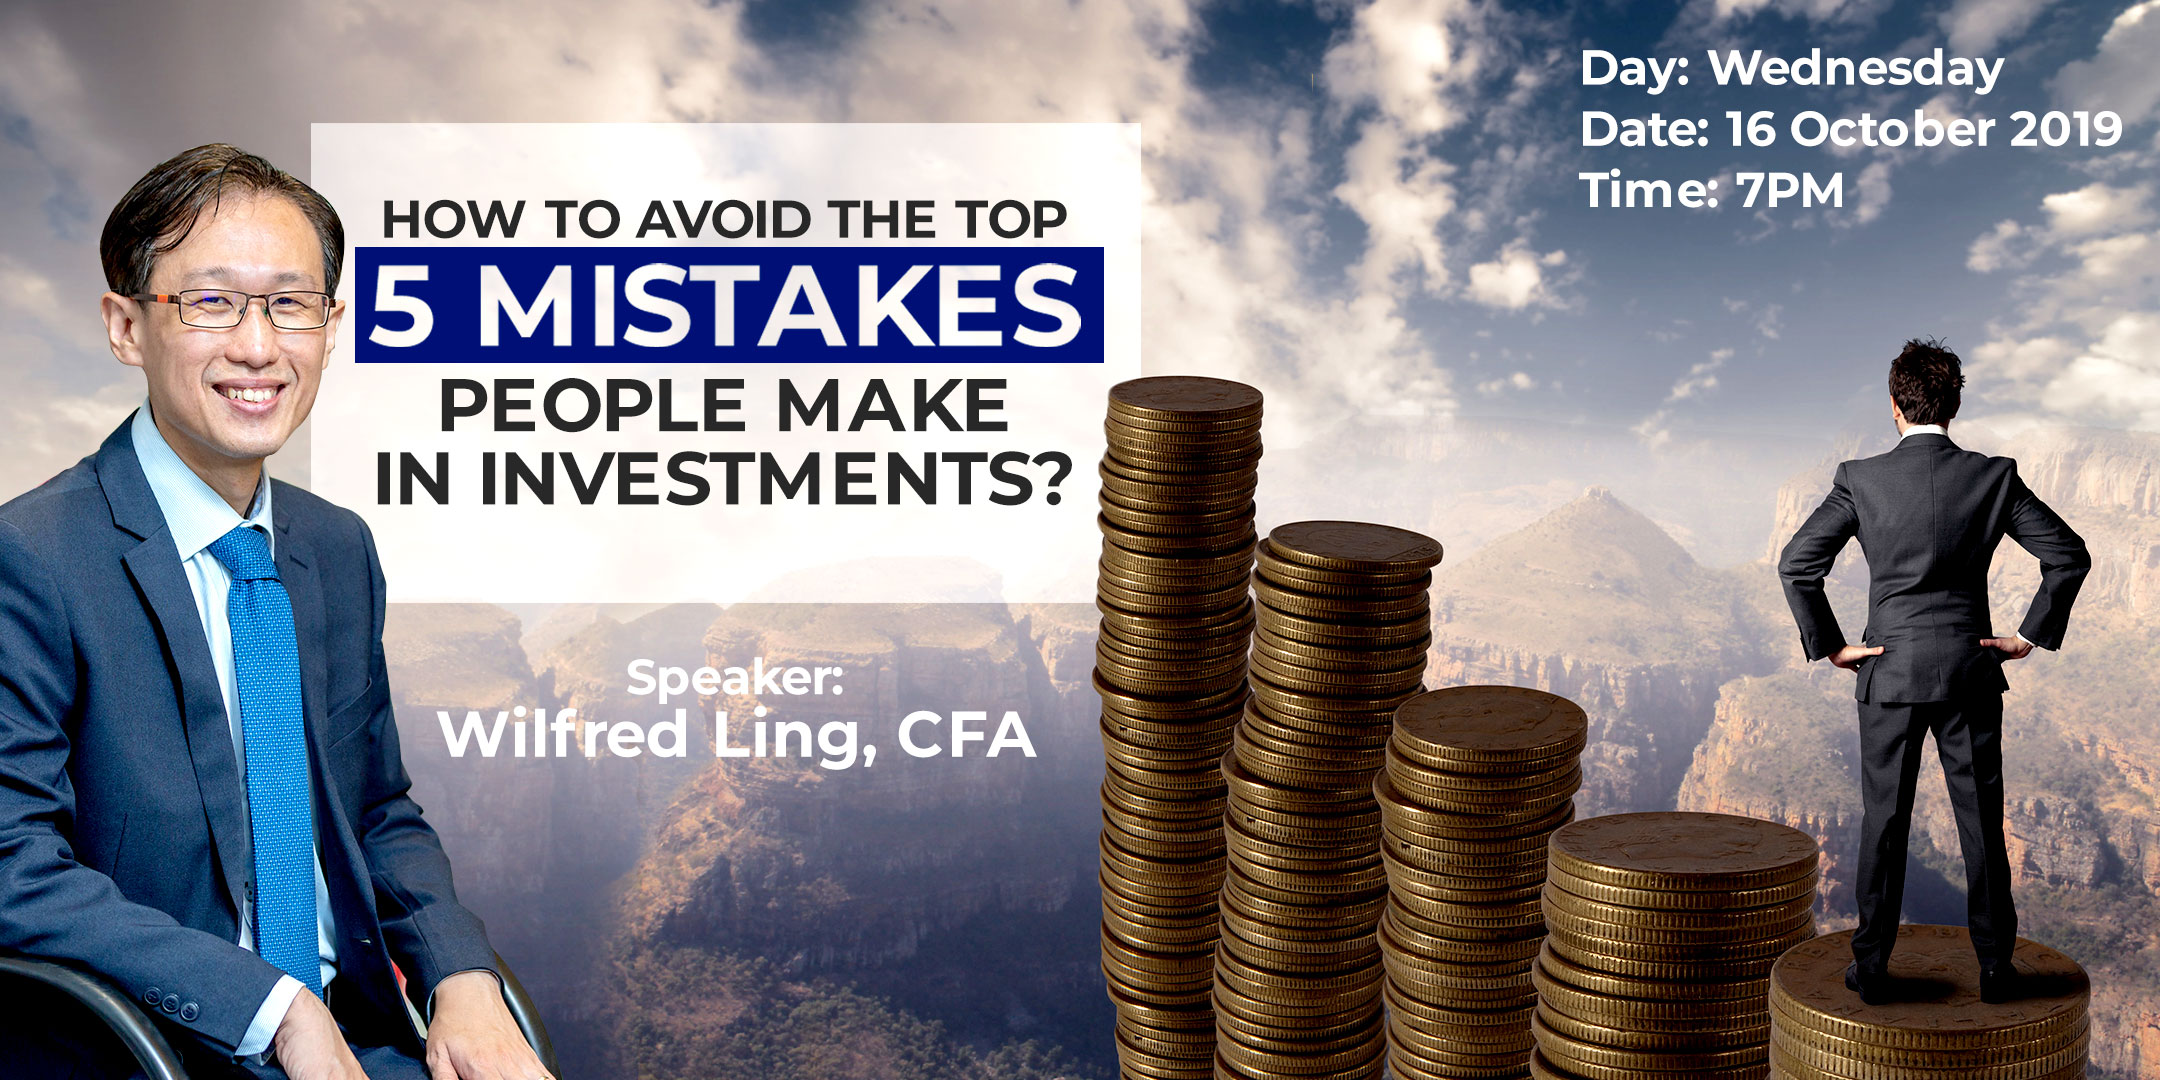 How to avoid the top 5 mistakes in investments